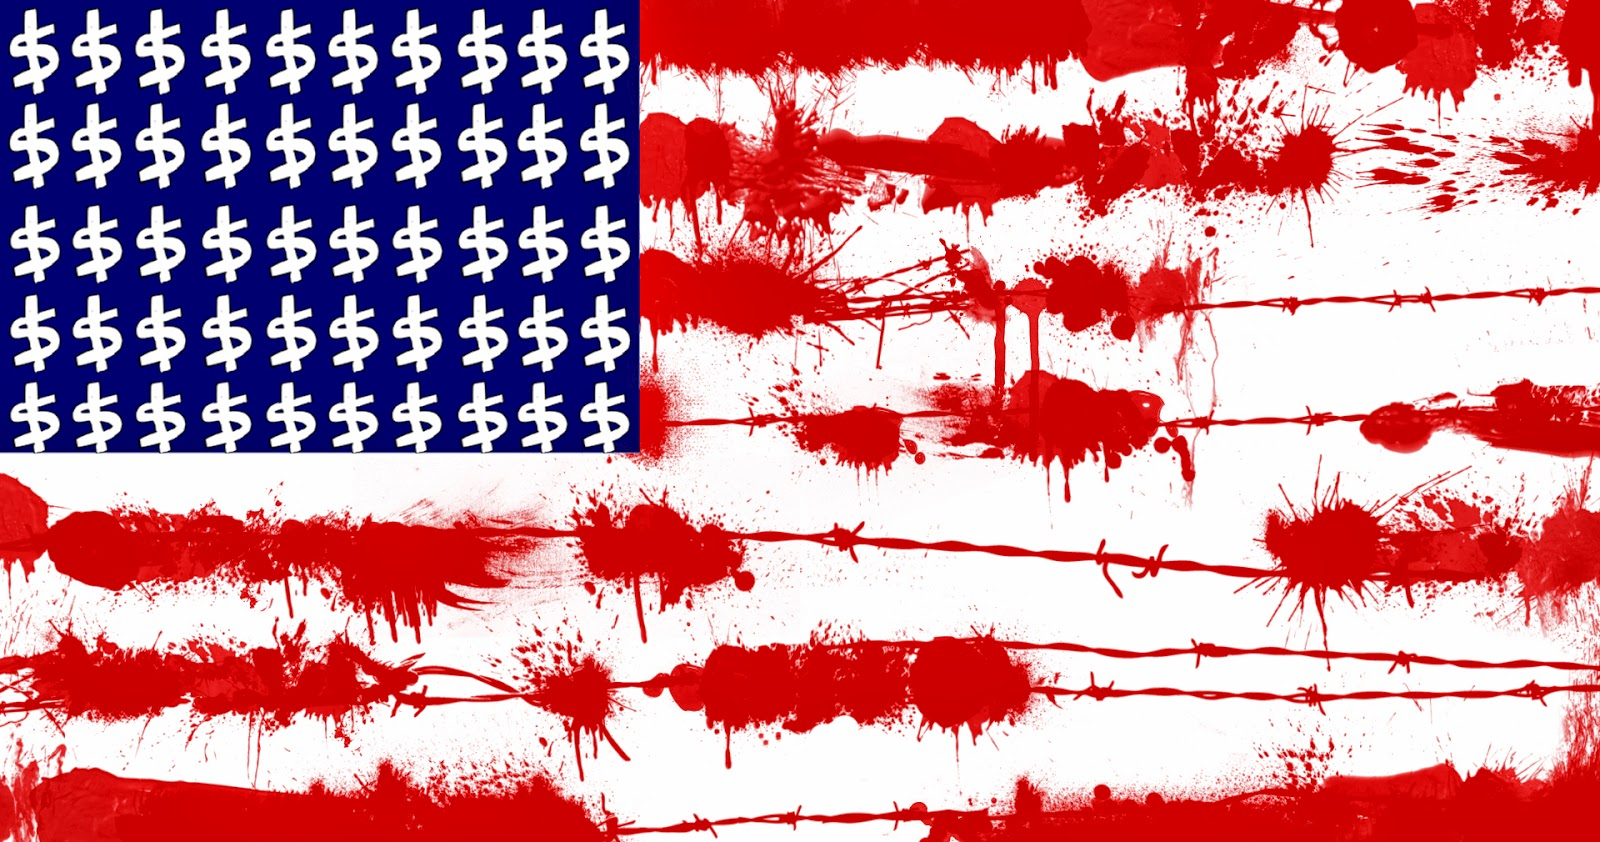 usa-flag-dollars-blood-barbed-wire